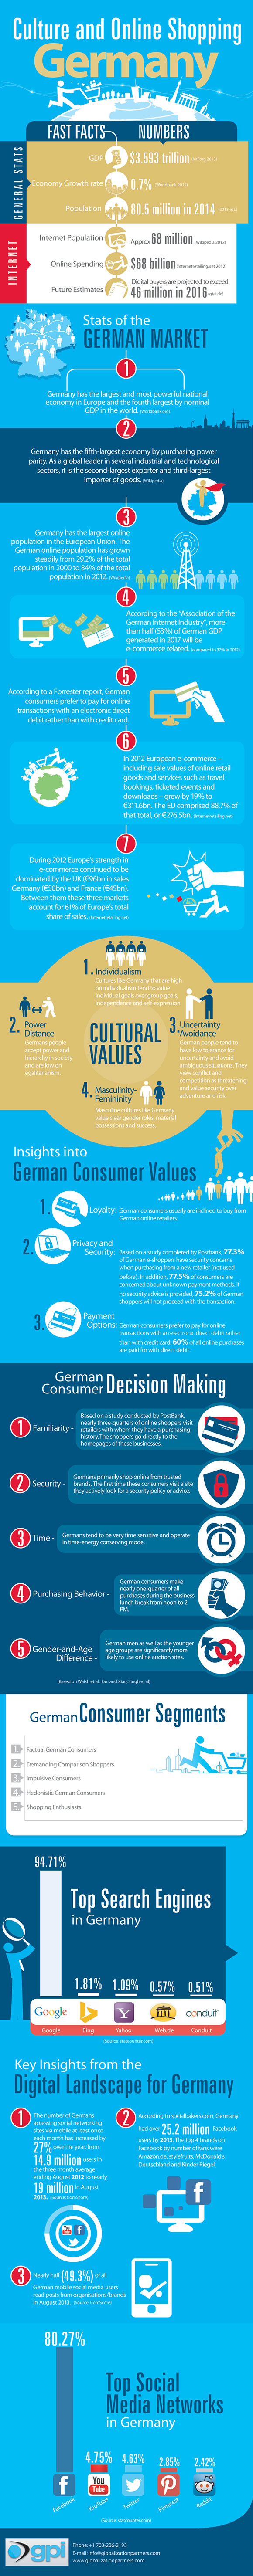 Germany-ebusiness-Infographic